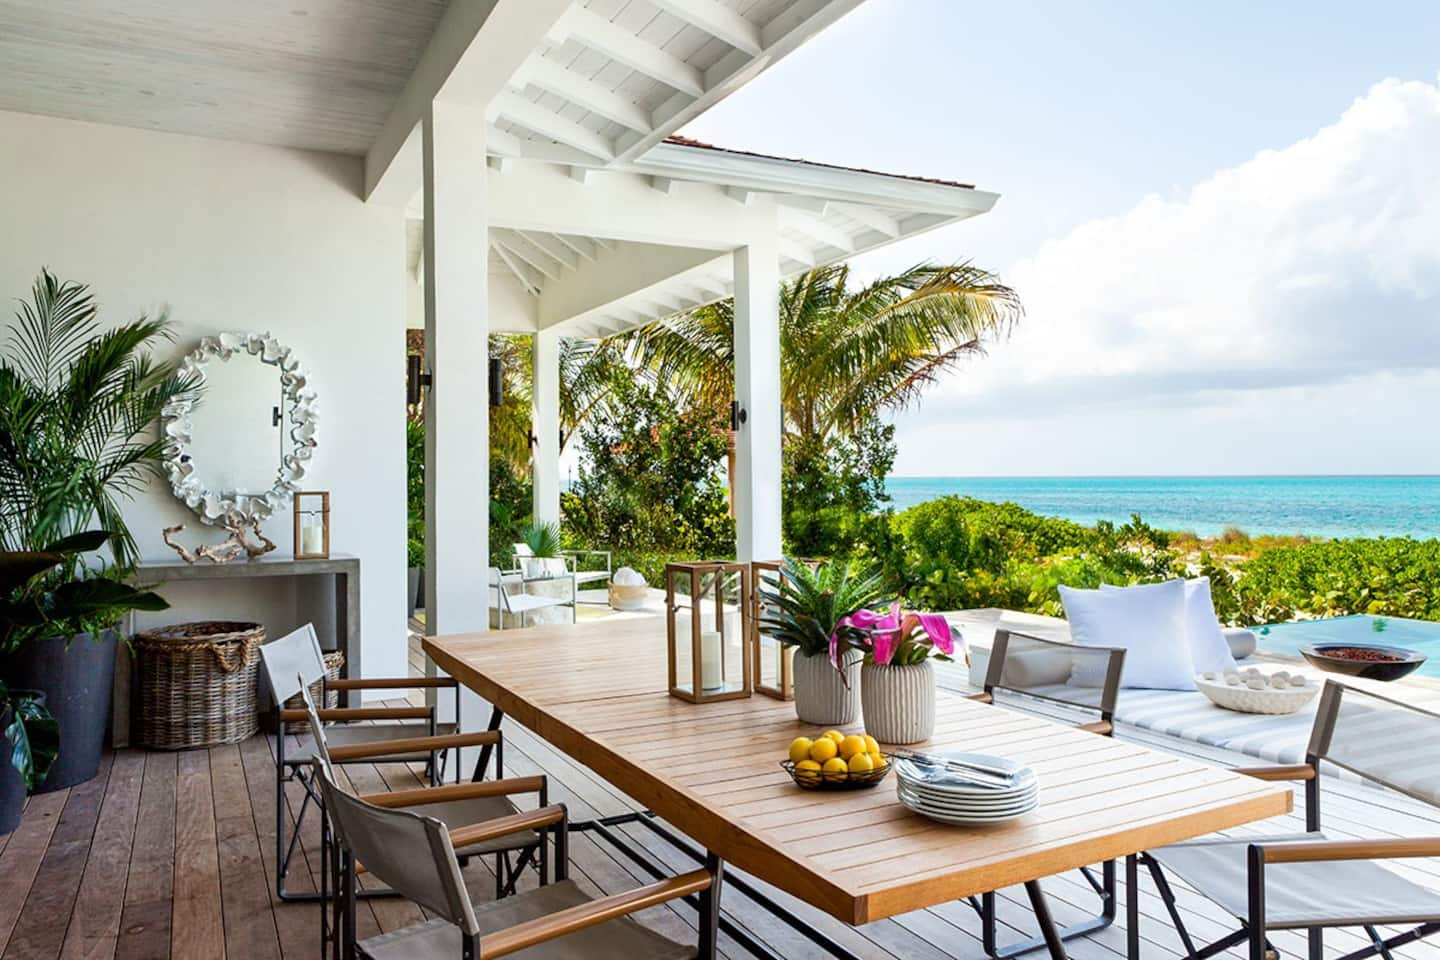 Airbnb Luxury The Residences Turks and Caicos